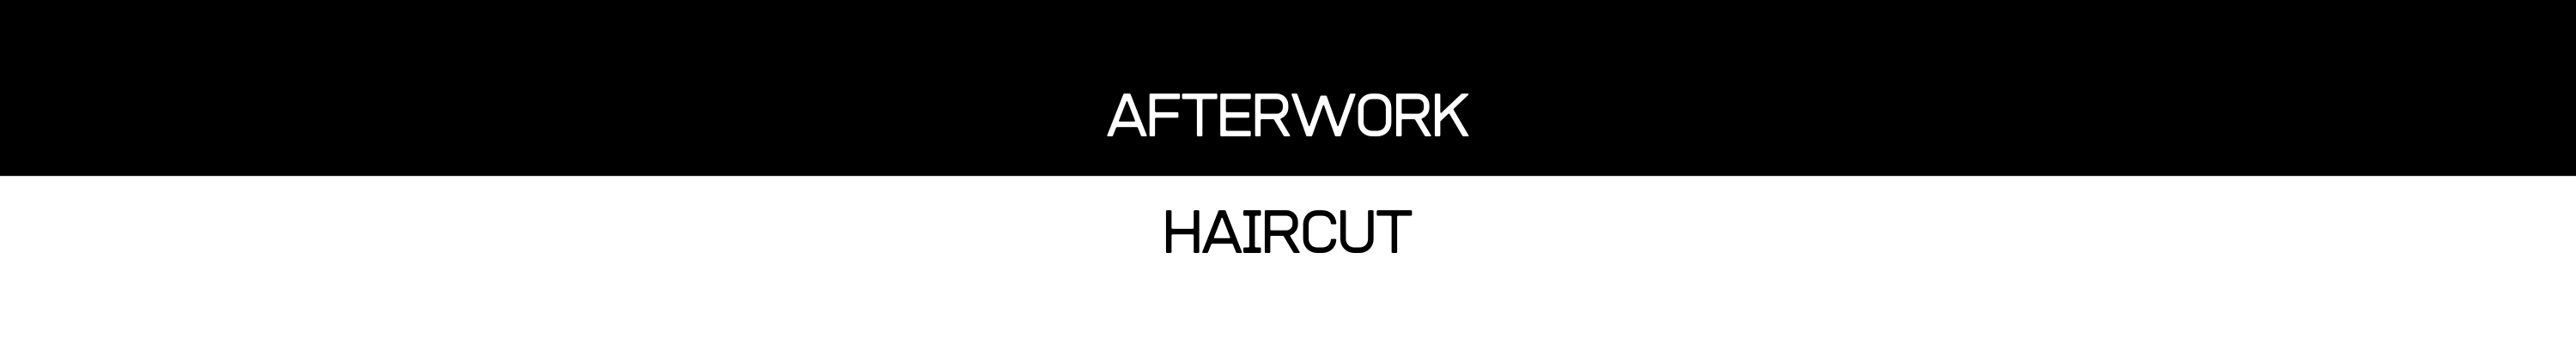 website logo afterwork haircut friseur in wien 1. bezirk